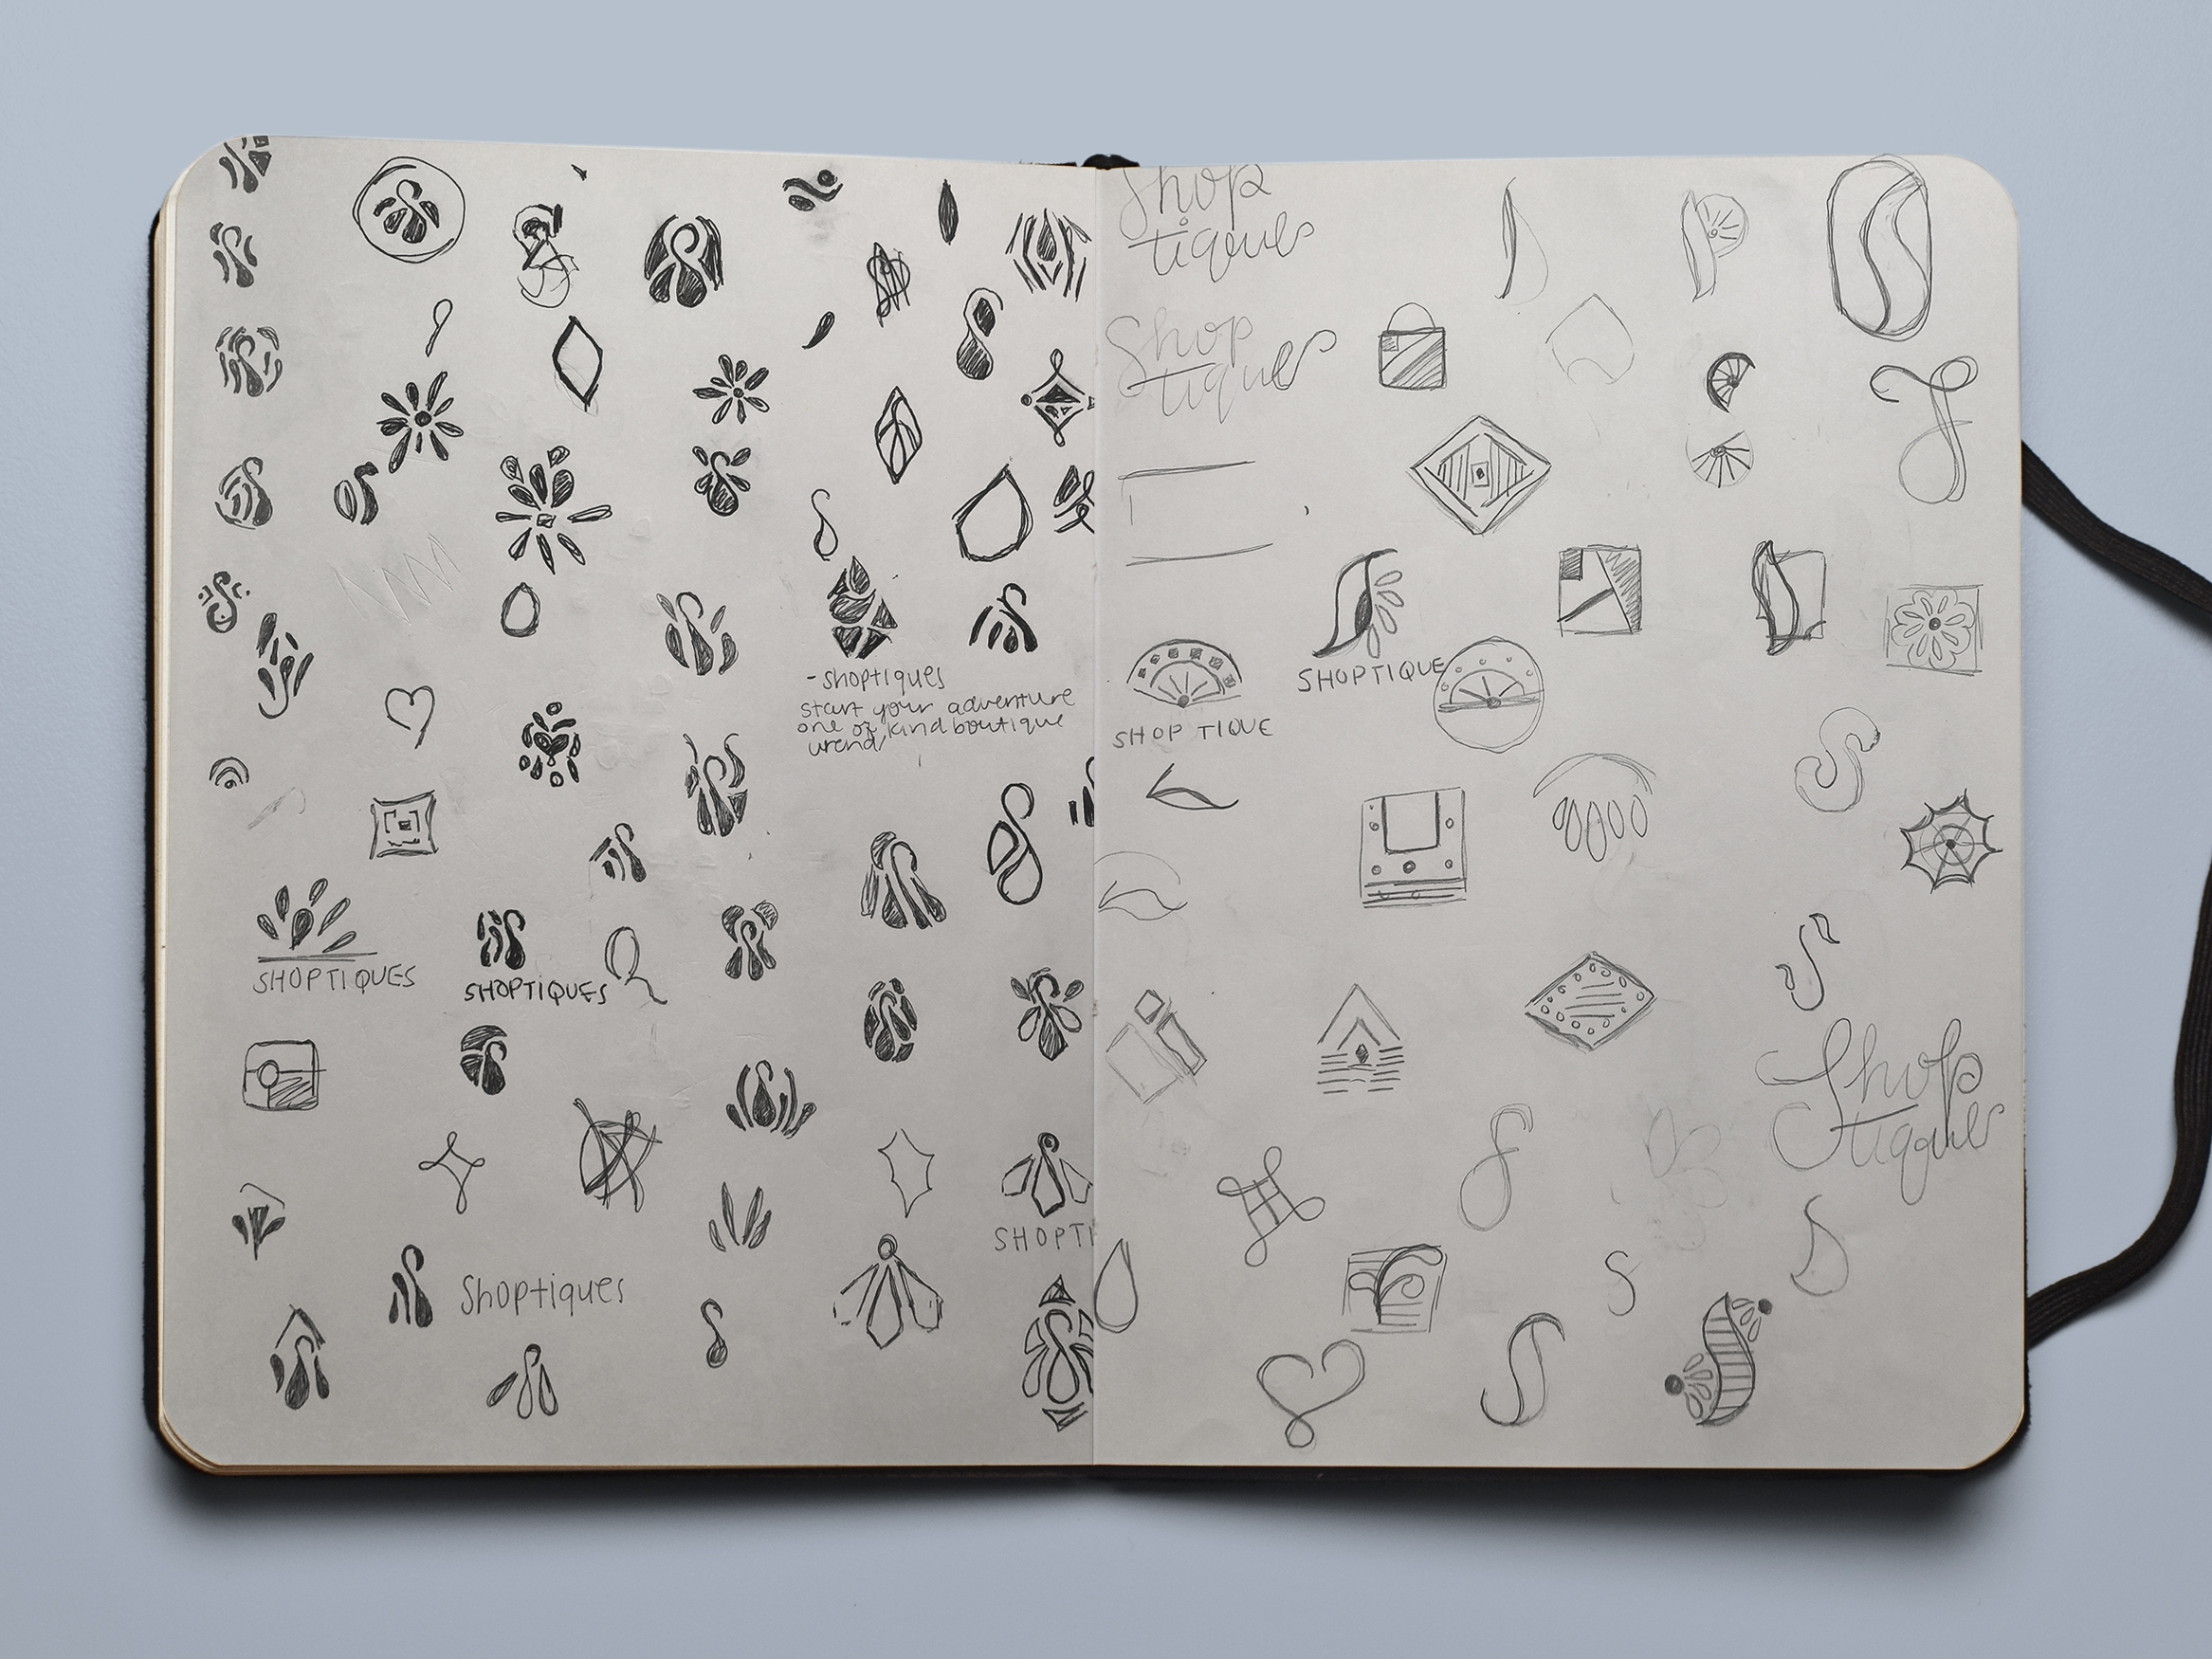 Sketchbook2.jpg